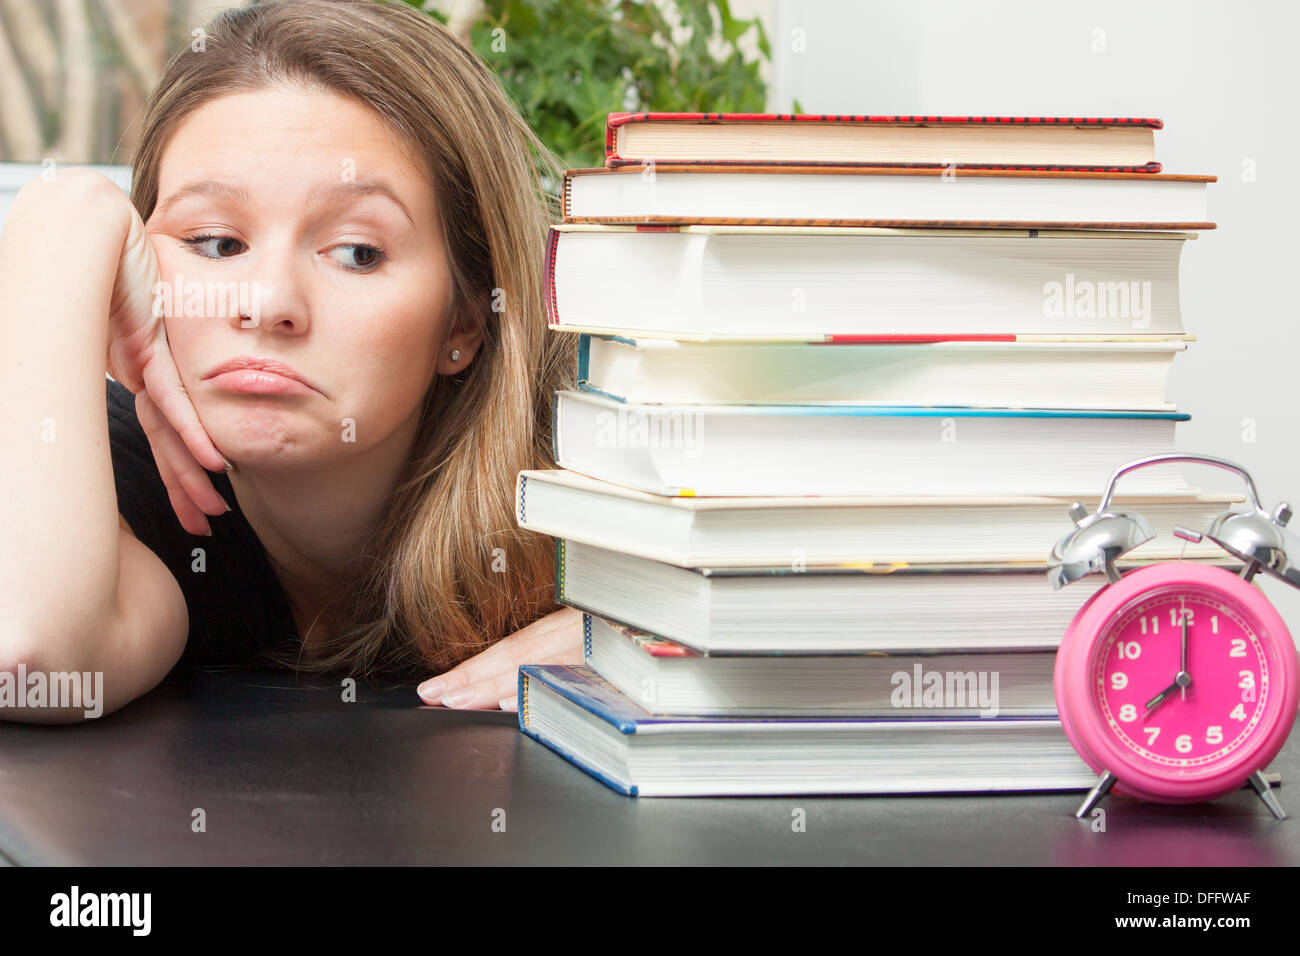 A young woman glances at the large pile of books for exam study a young woman glances at the large pile of books for exam study time ticks by reminding her of the limited time to prepare altavistaventures Image collections